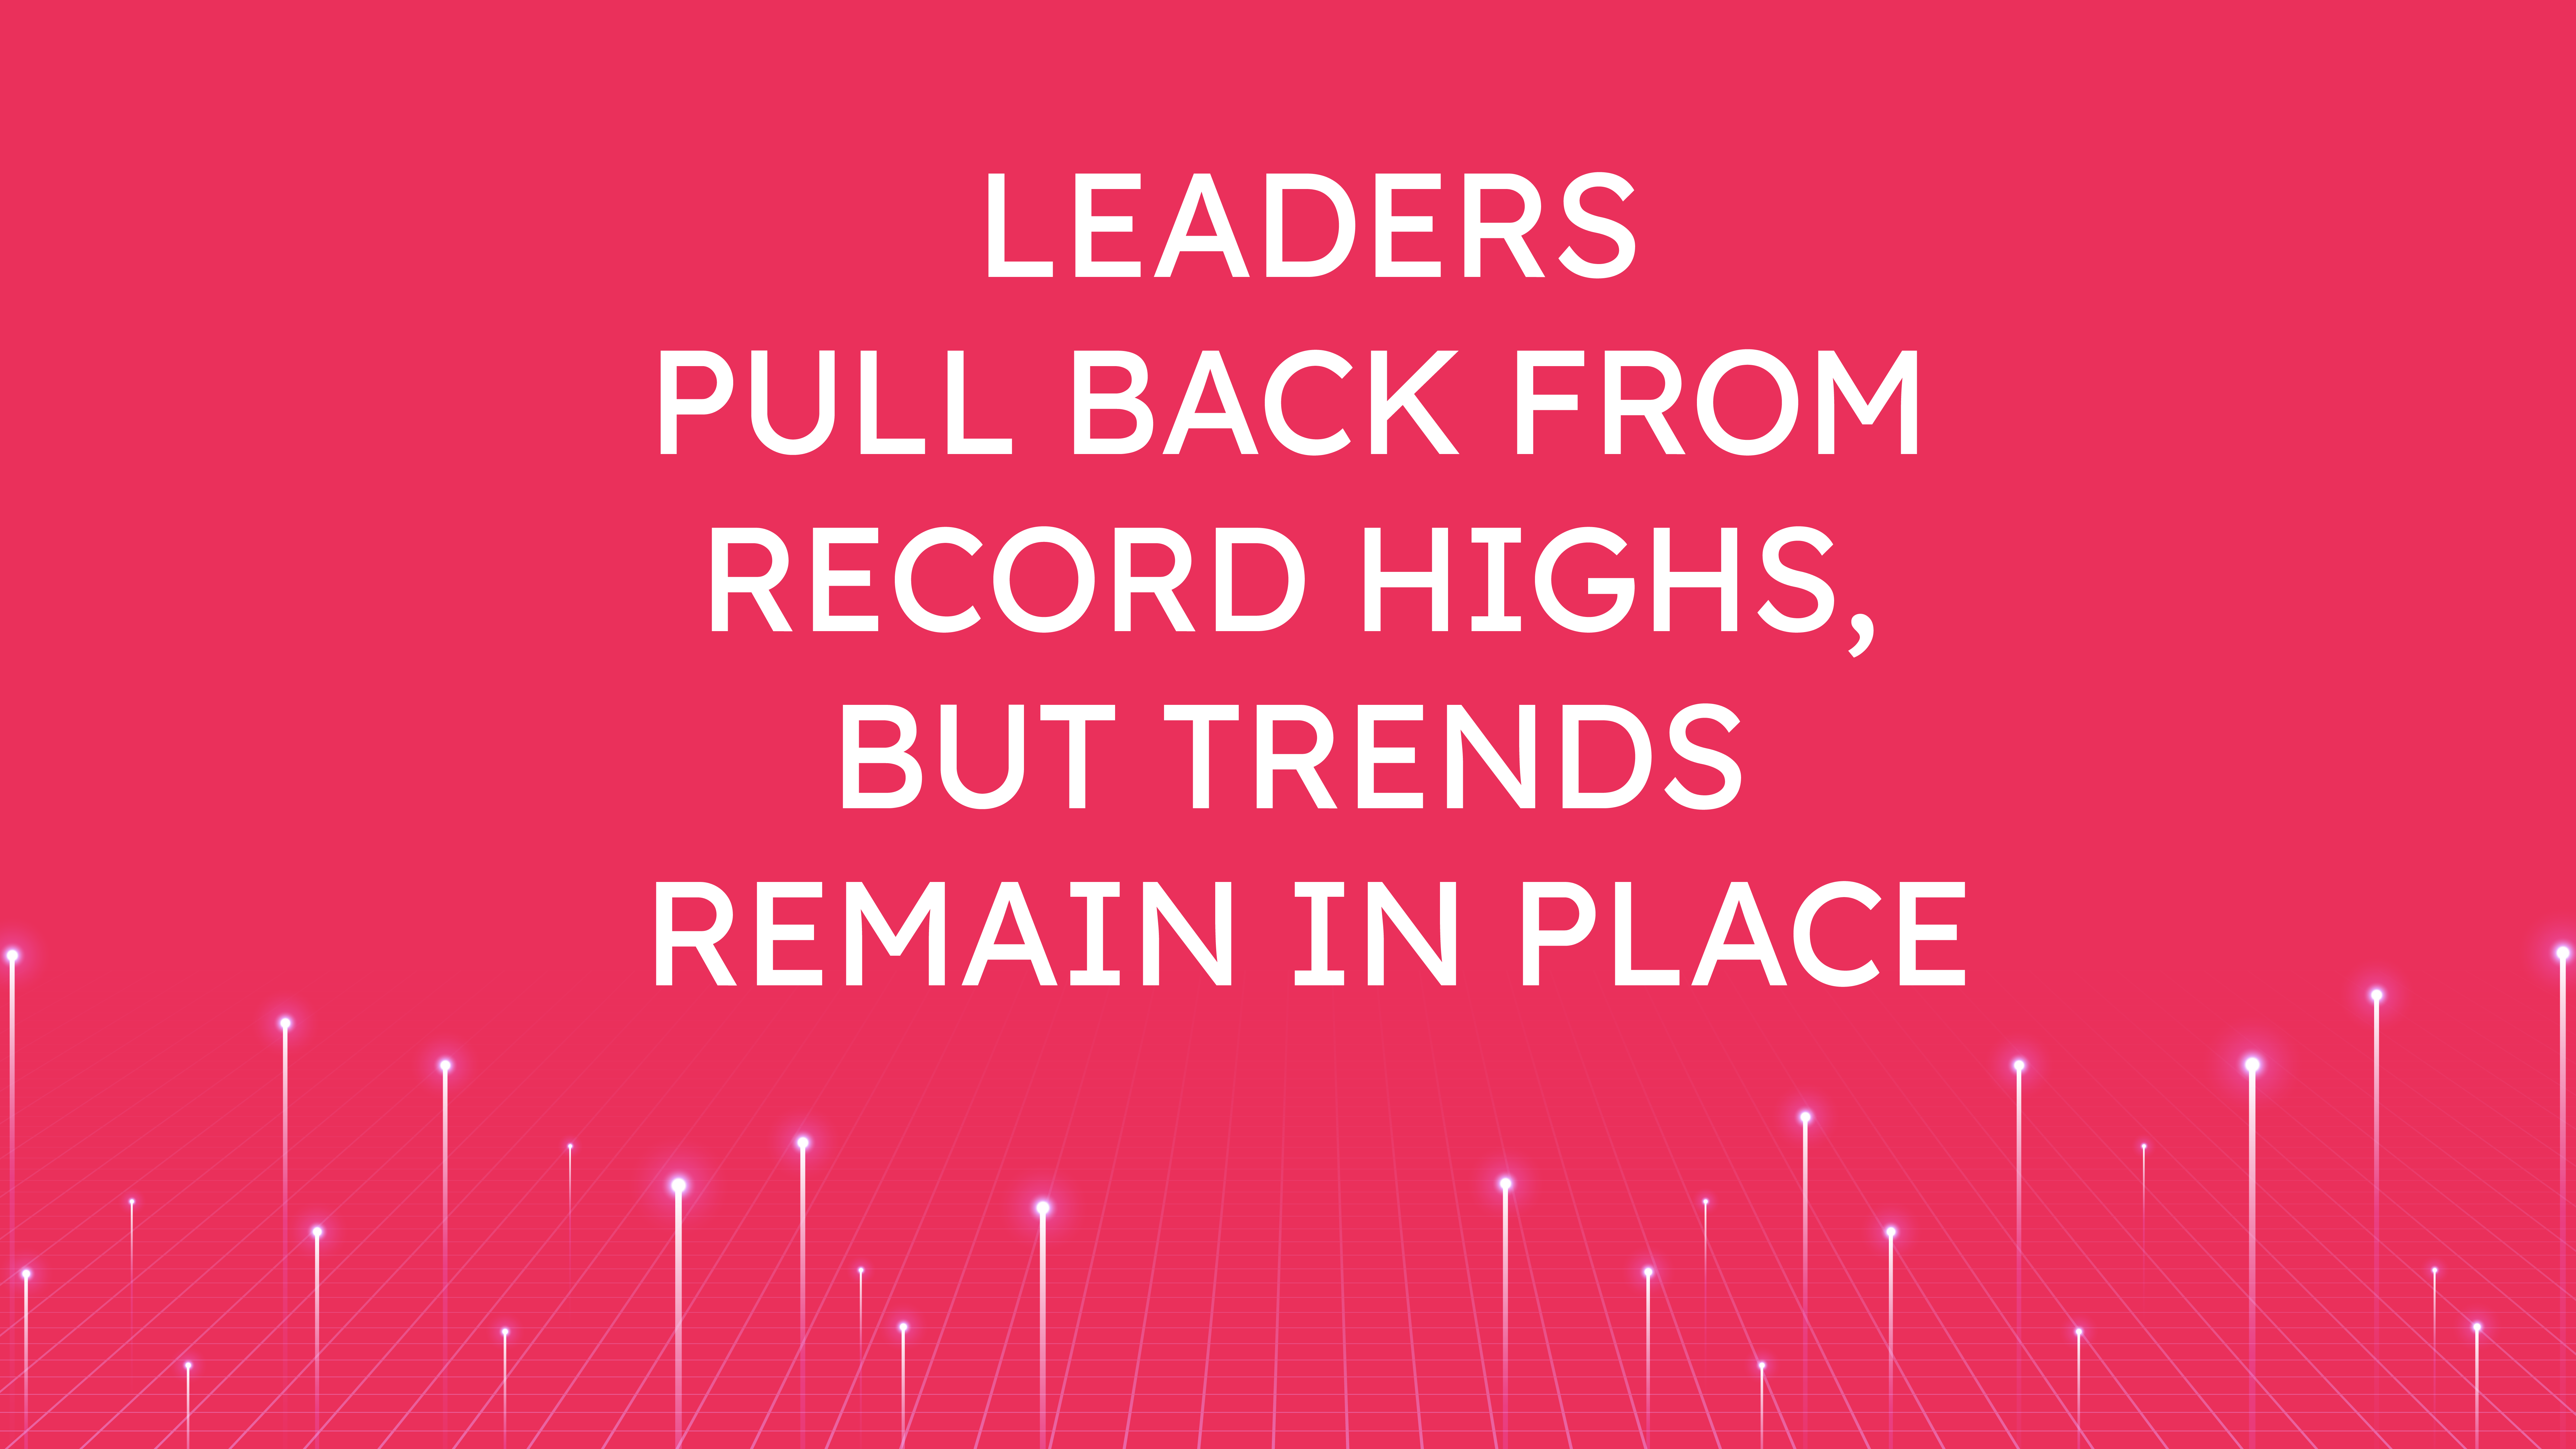 Leaders Pull Back from Record Highs,  but Trends Remain in Place